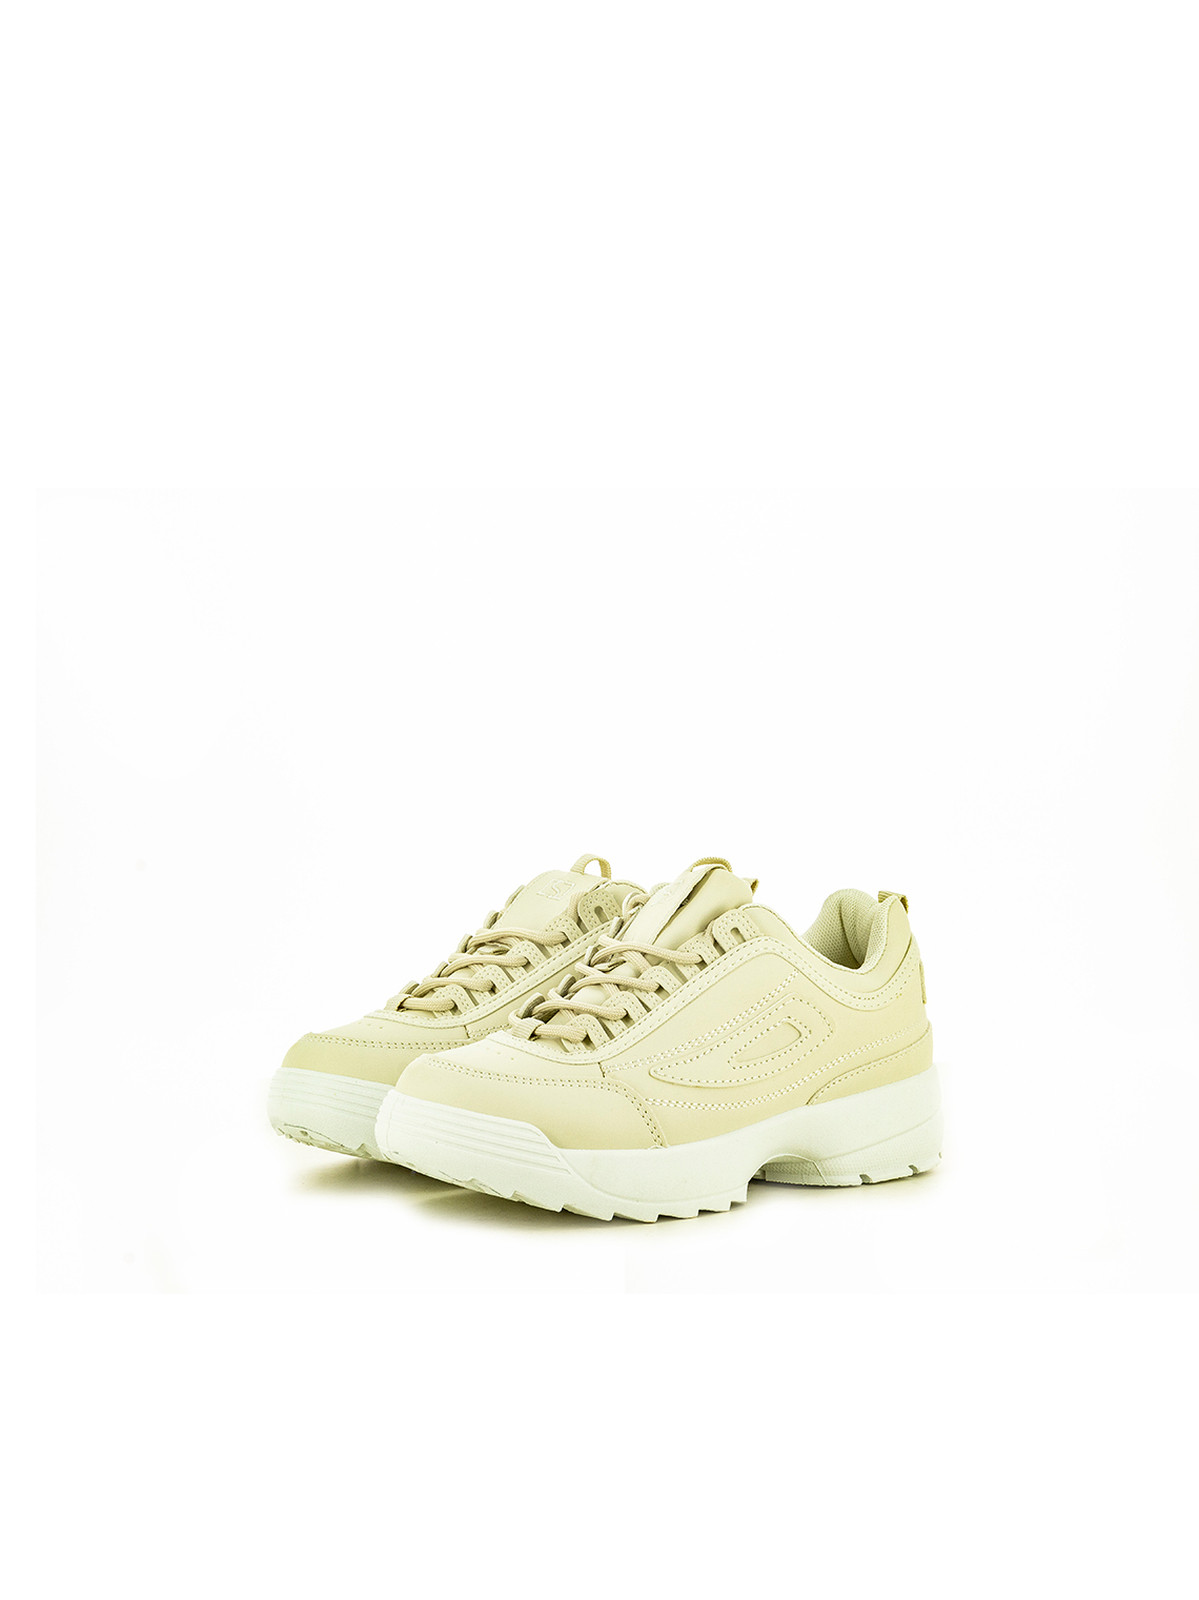 Foto 22 - Chunky Sneakers Seaside, 19.99 euros.jpg